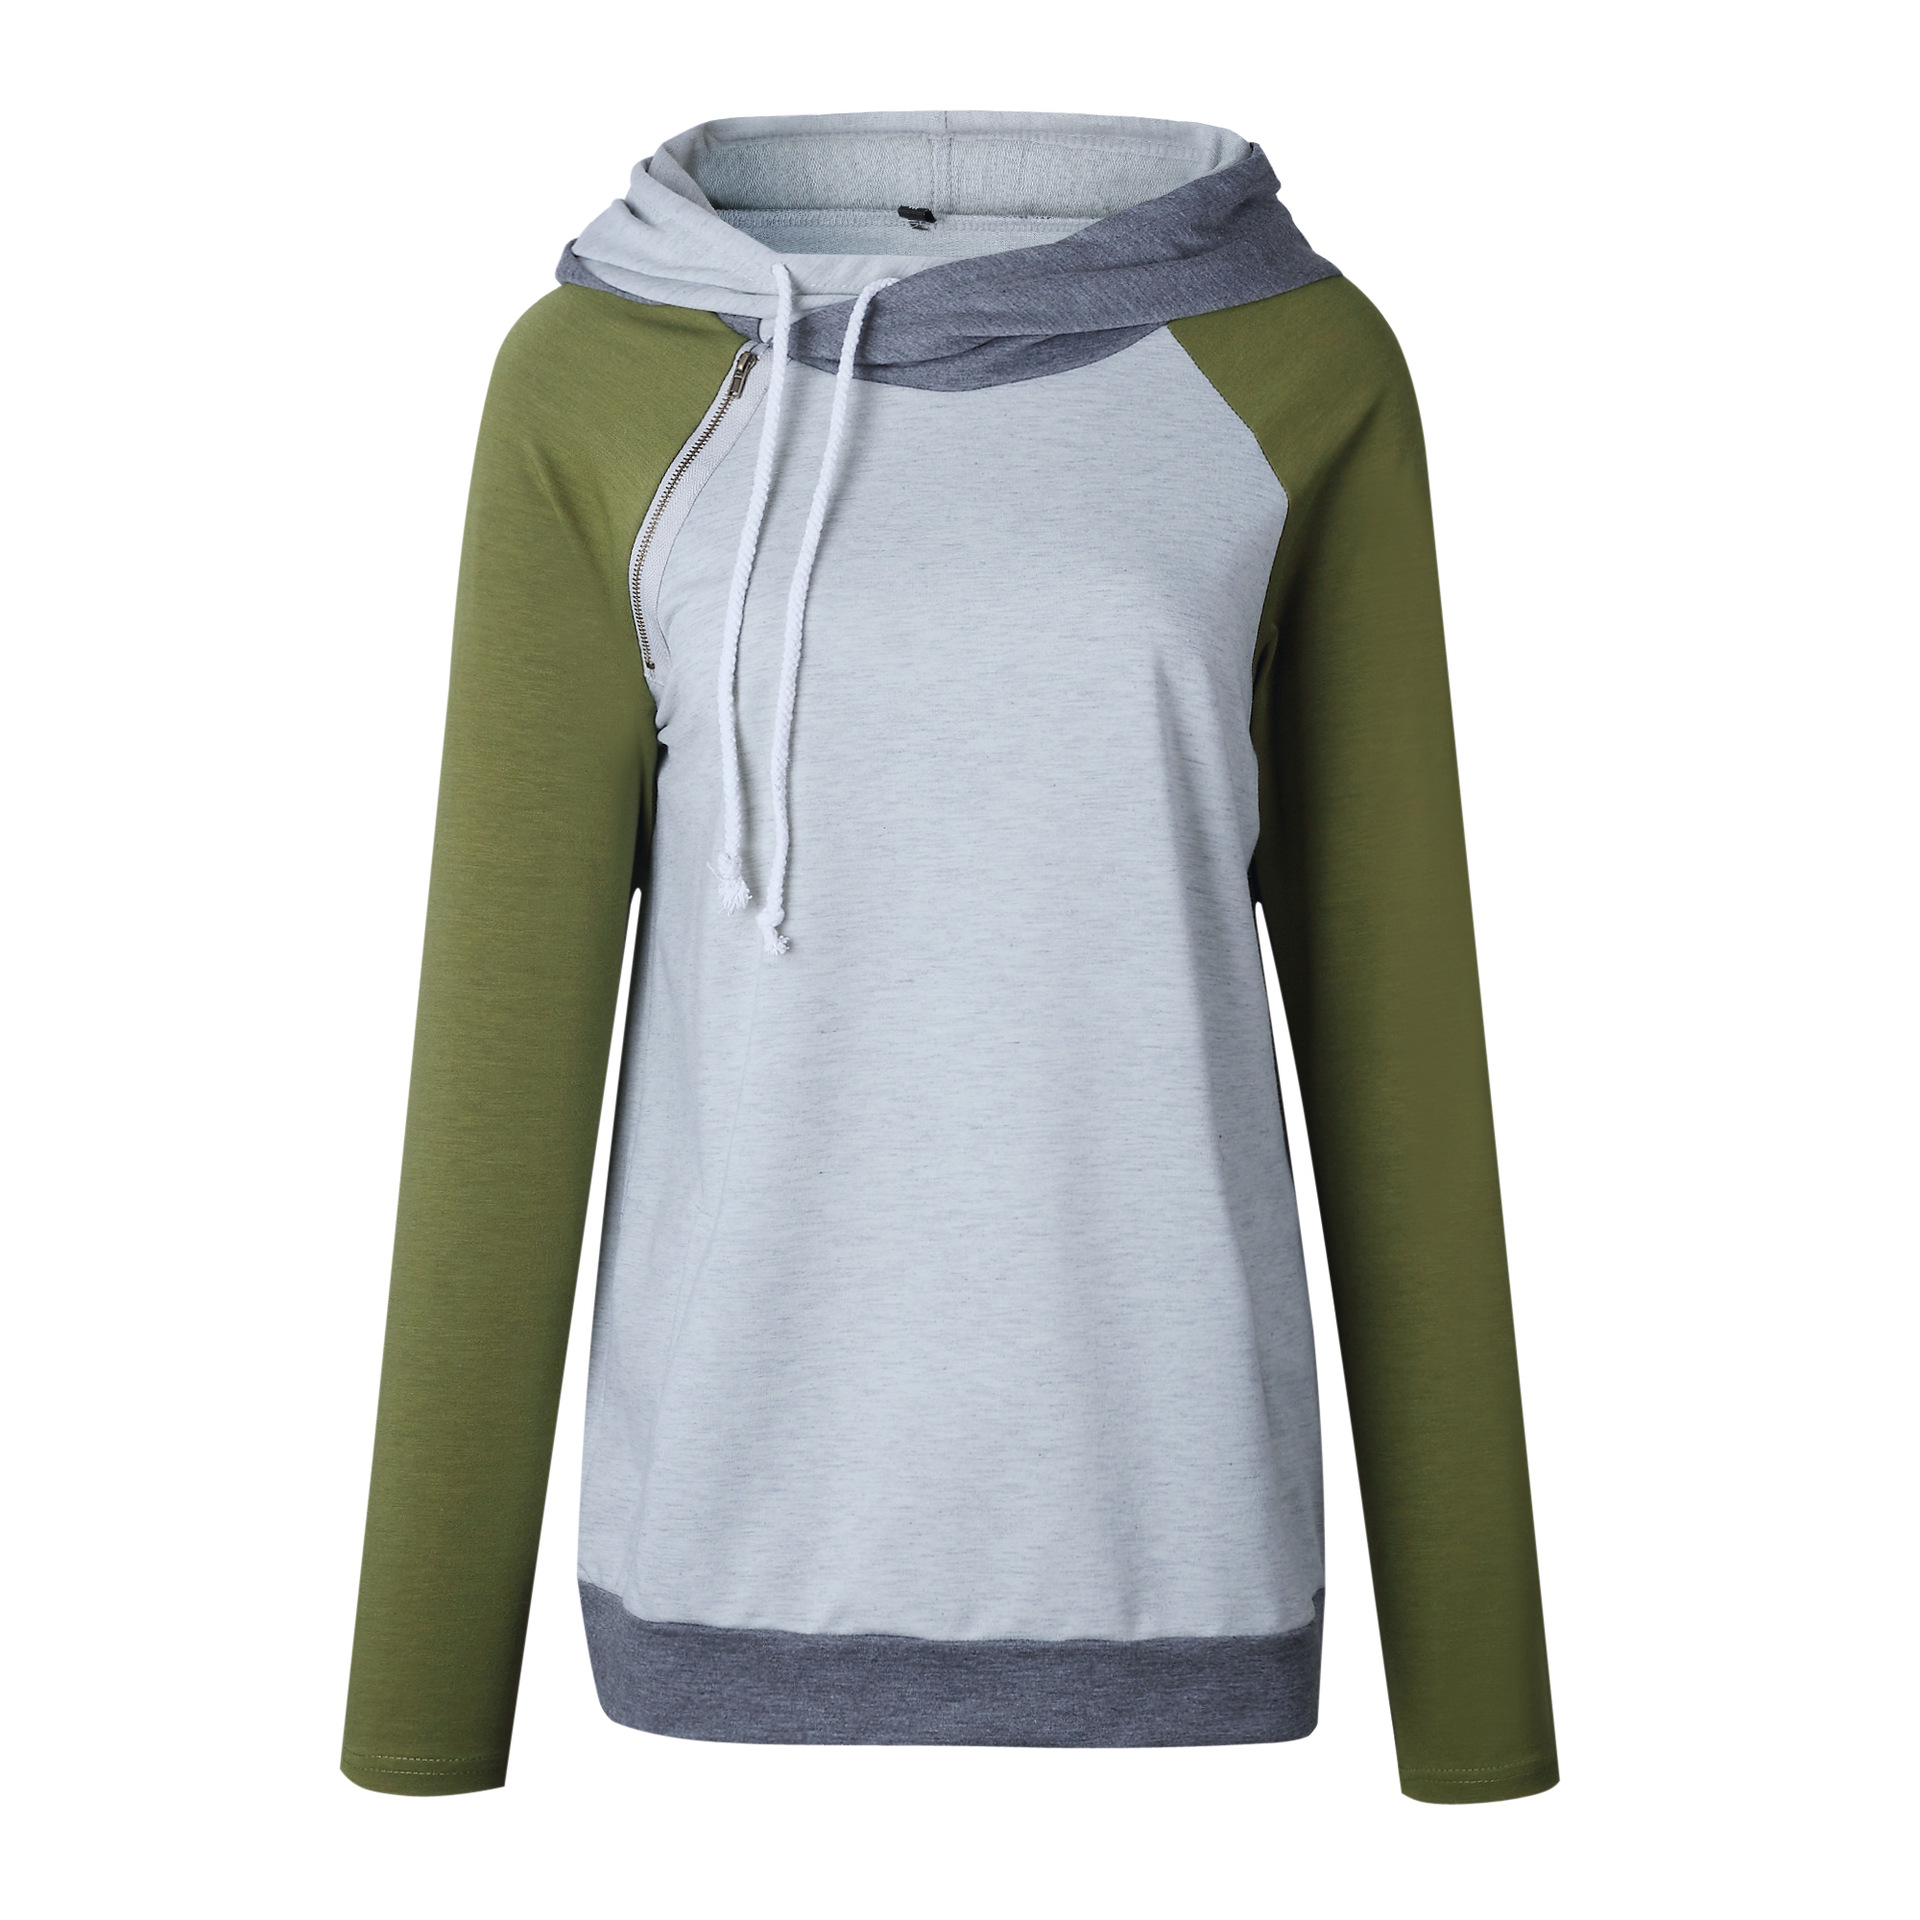 Women's Patchwork Striped Pullover Long Sleeve Hoodie, Tops With Pockets, Hooded Sweatshirt 53